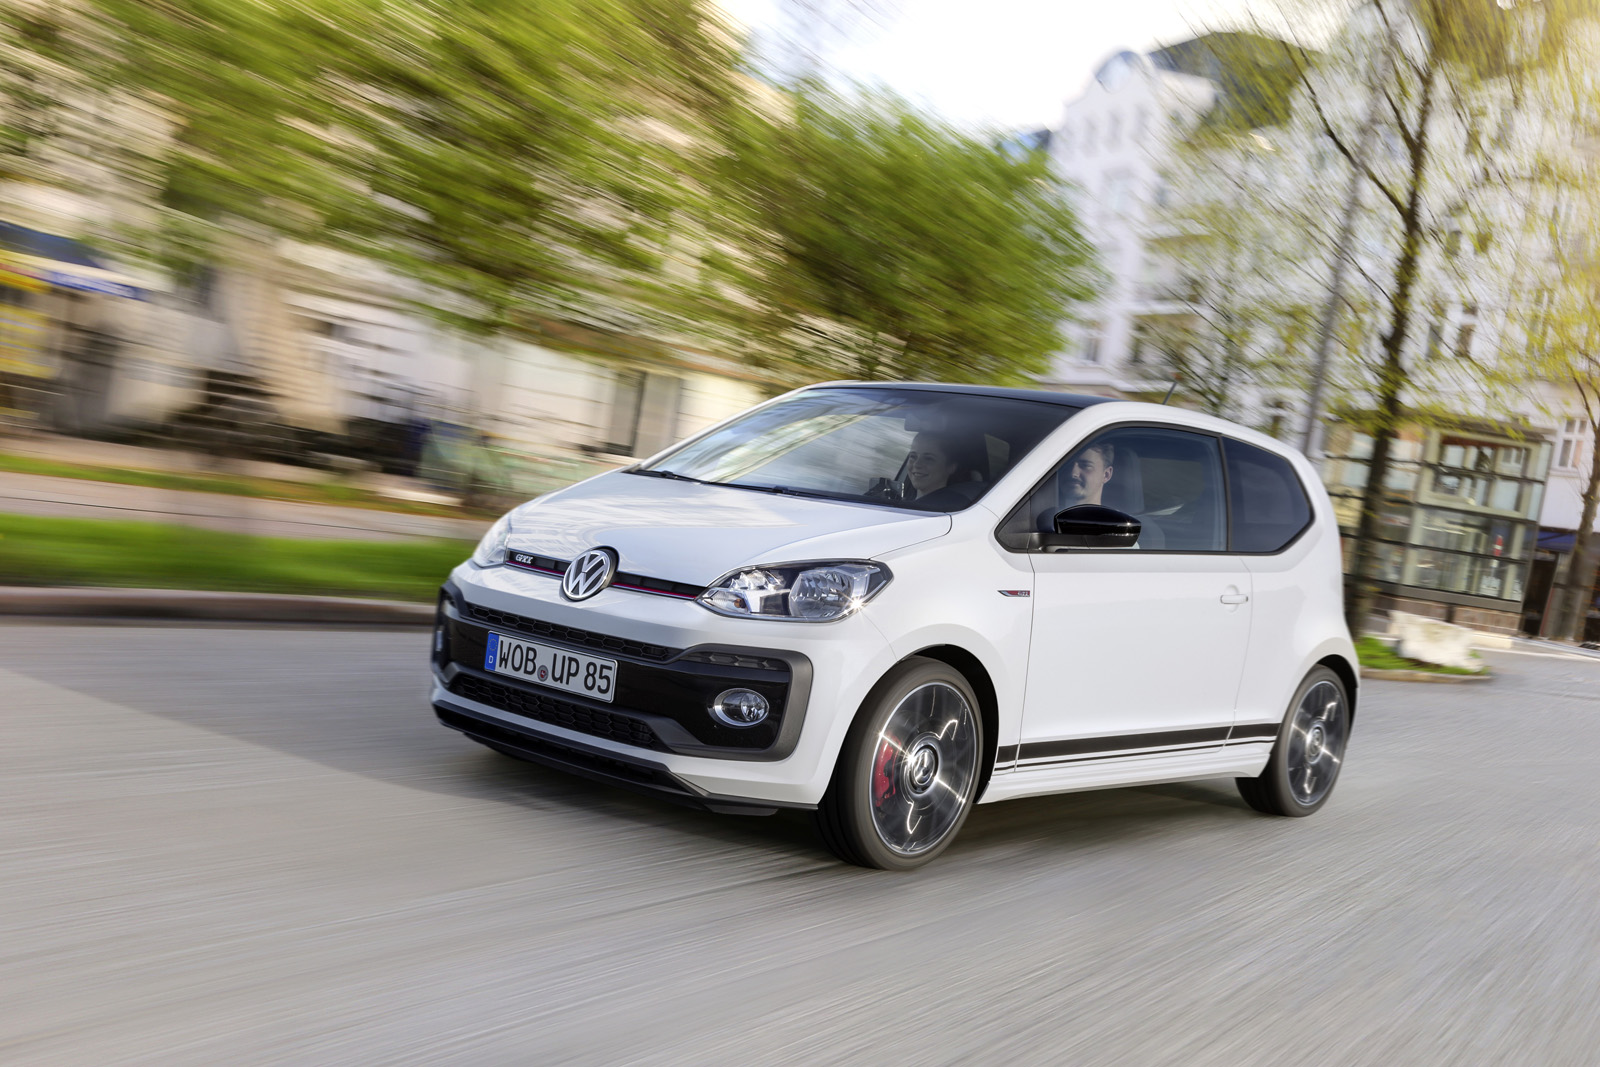 Volkswagen to launch GTI version of Up city vehicle